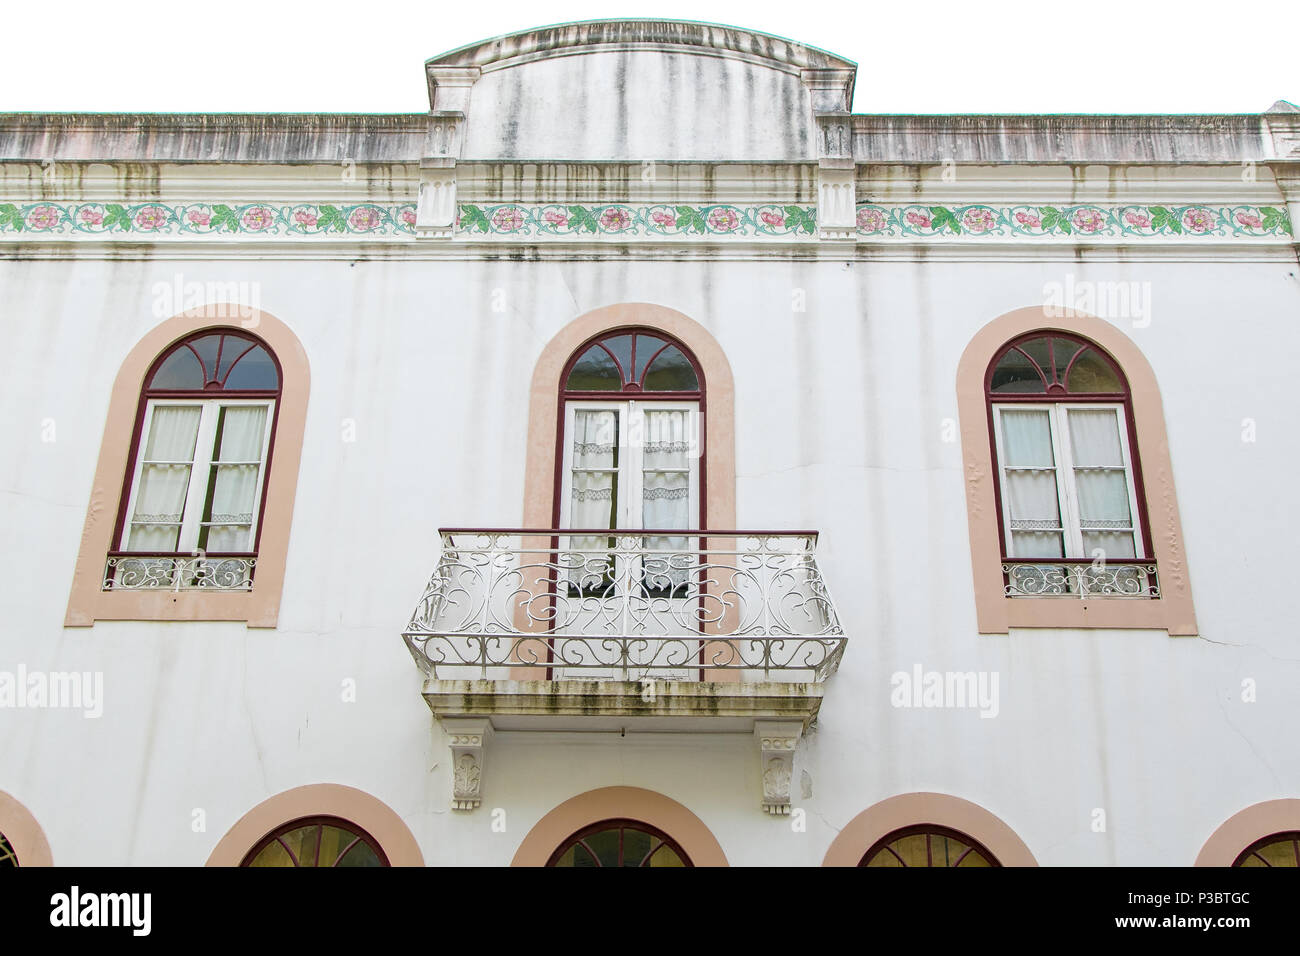 Exterior white wall of a building with arched windows with pale ...